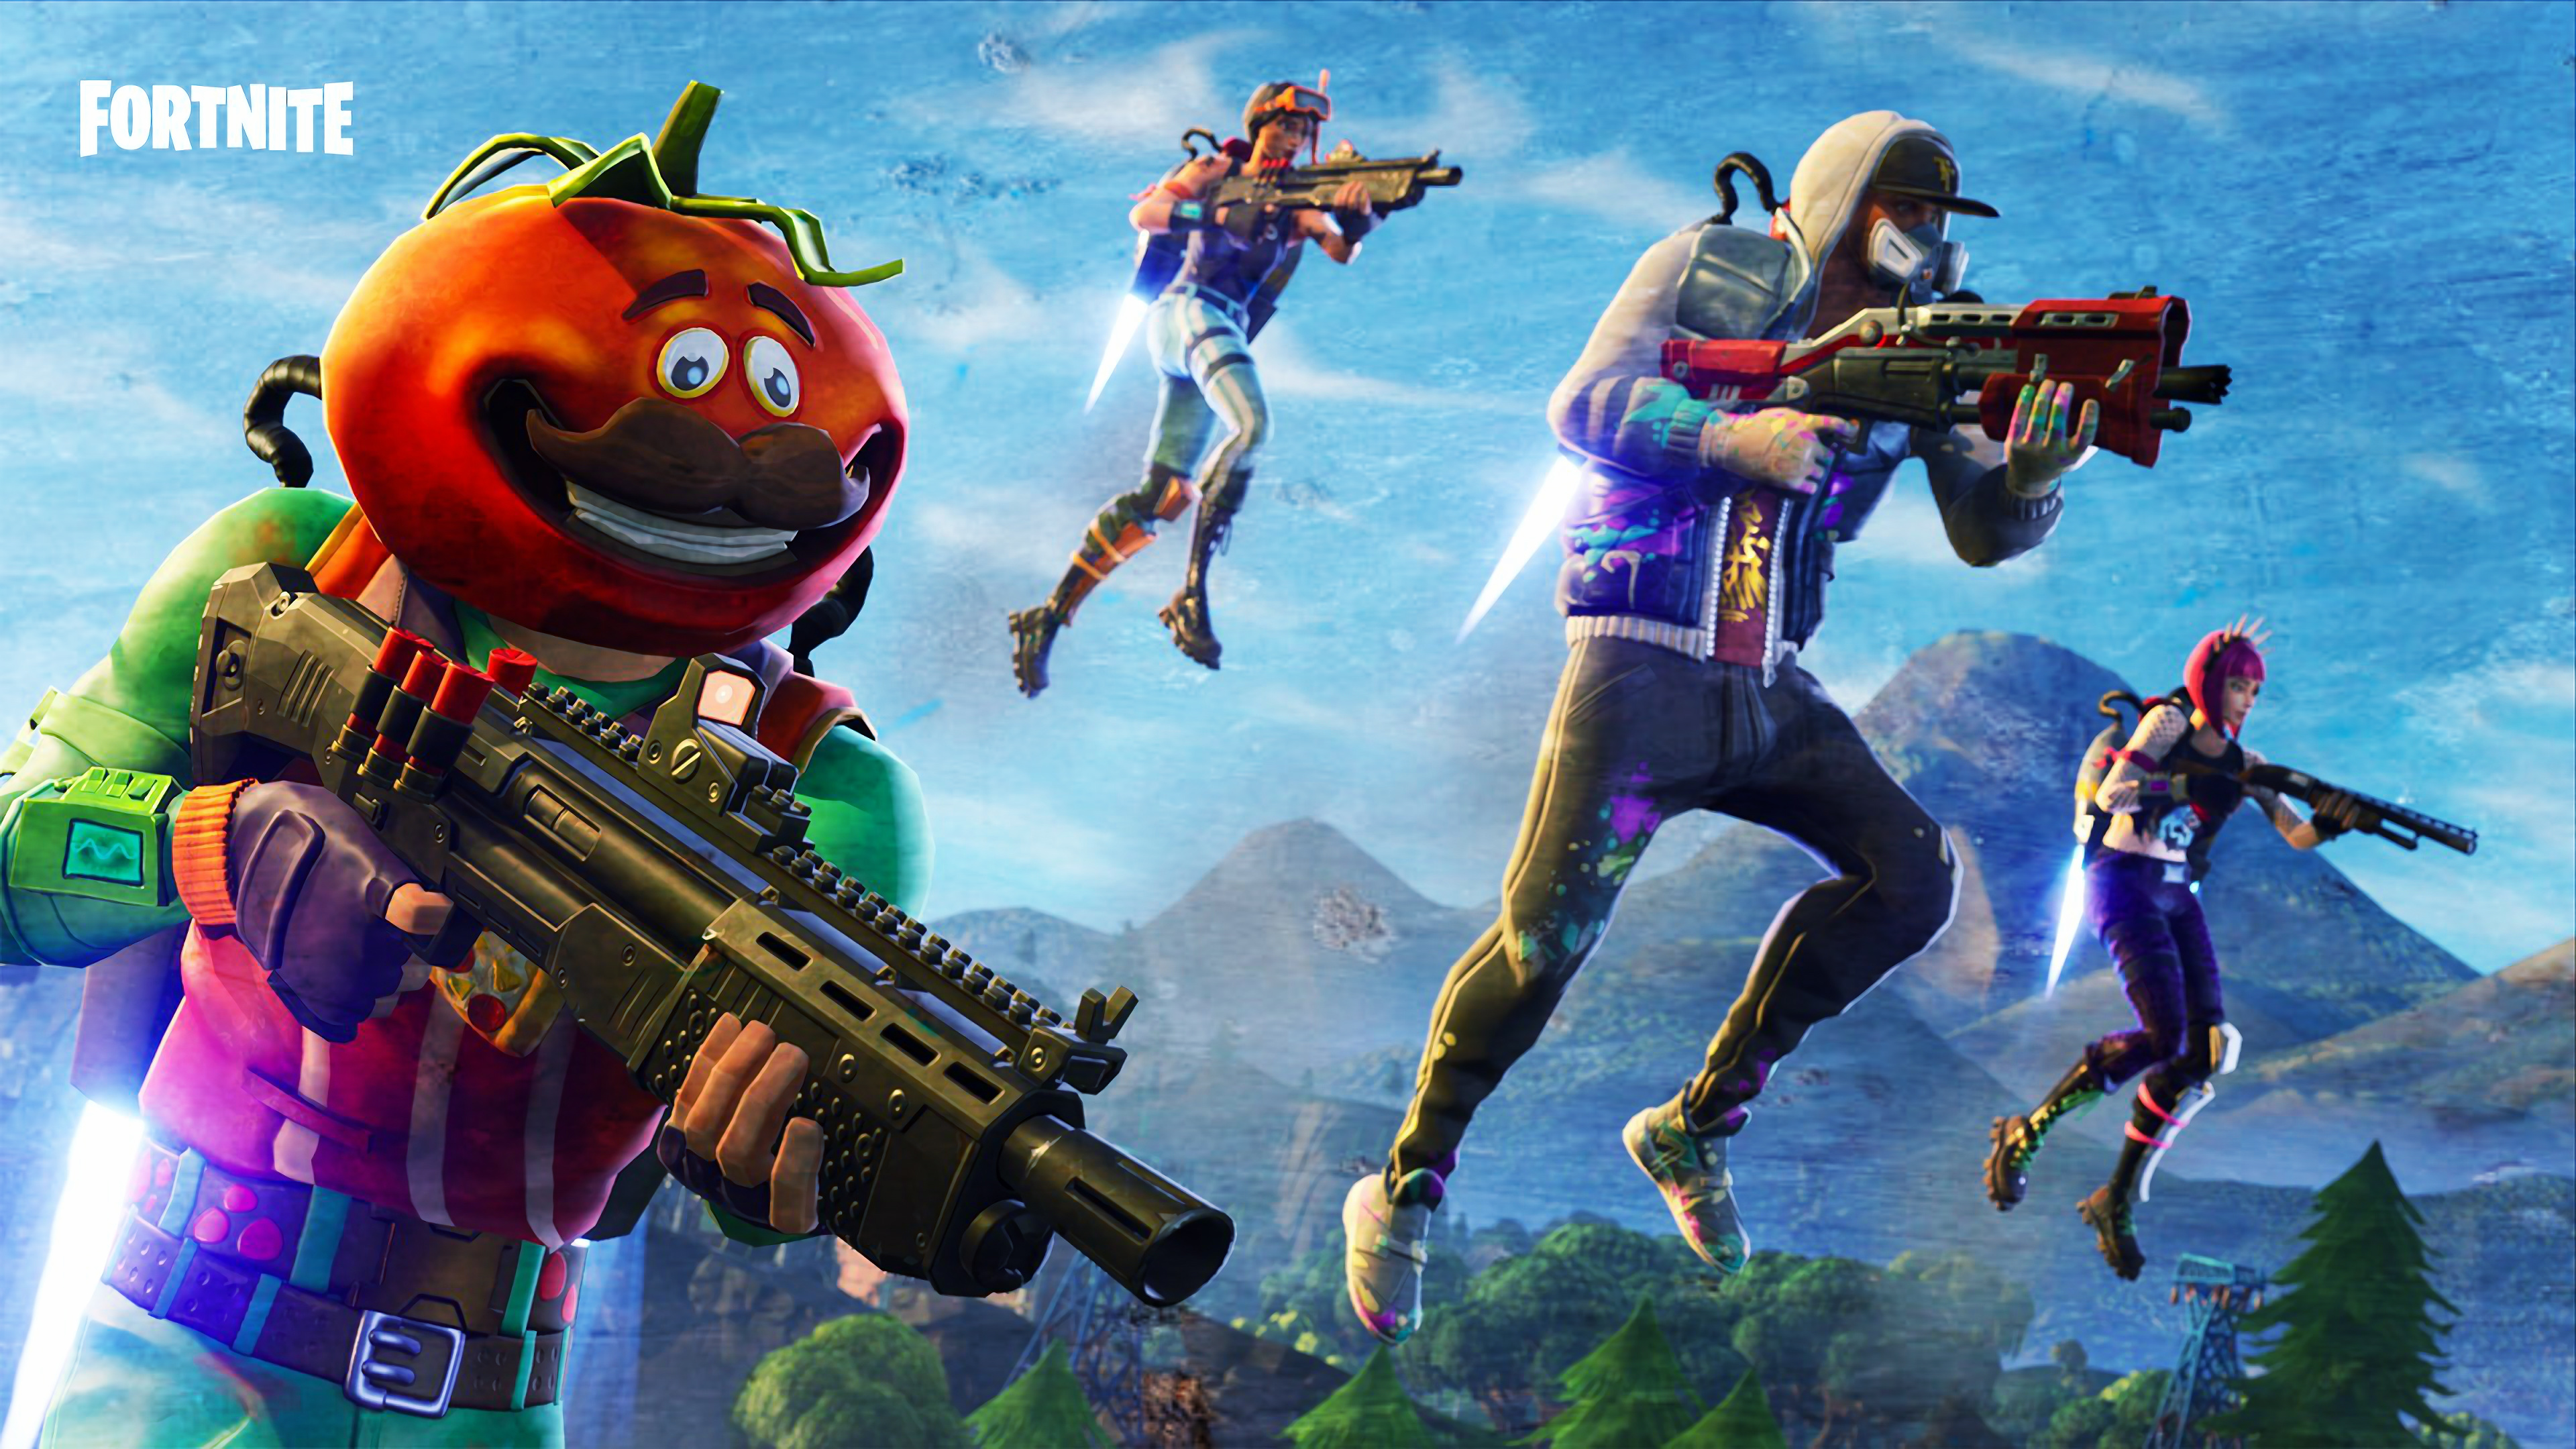 fortnite wallpaper 1440x900: 2560x1080 Fortnite 2018 Game 2560x1080 Resolution HD 4k